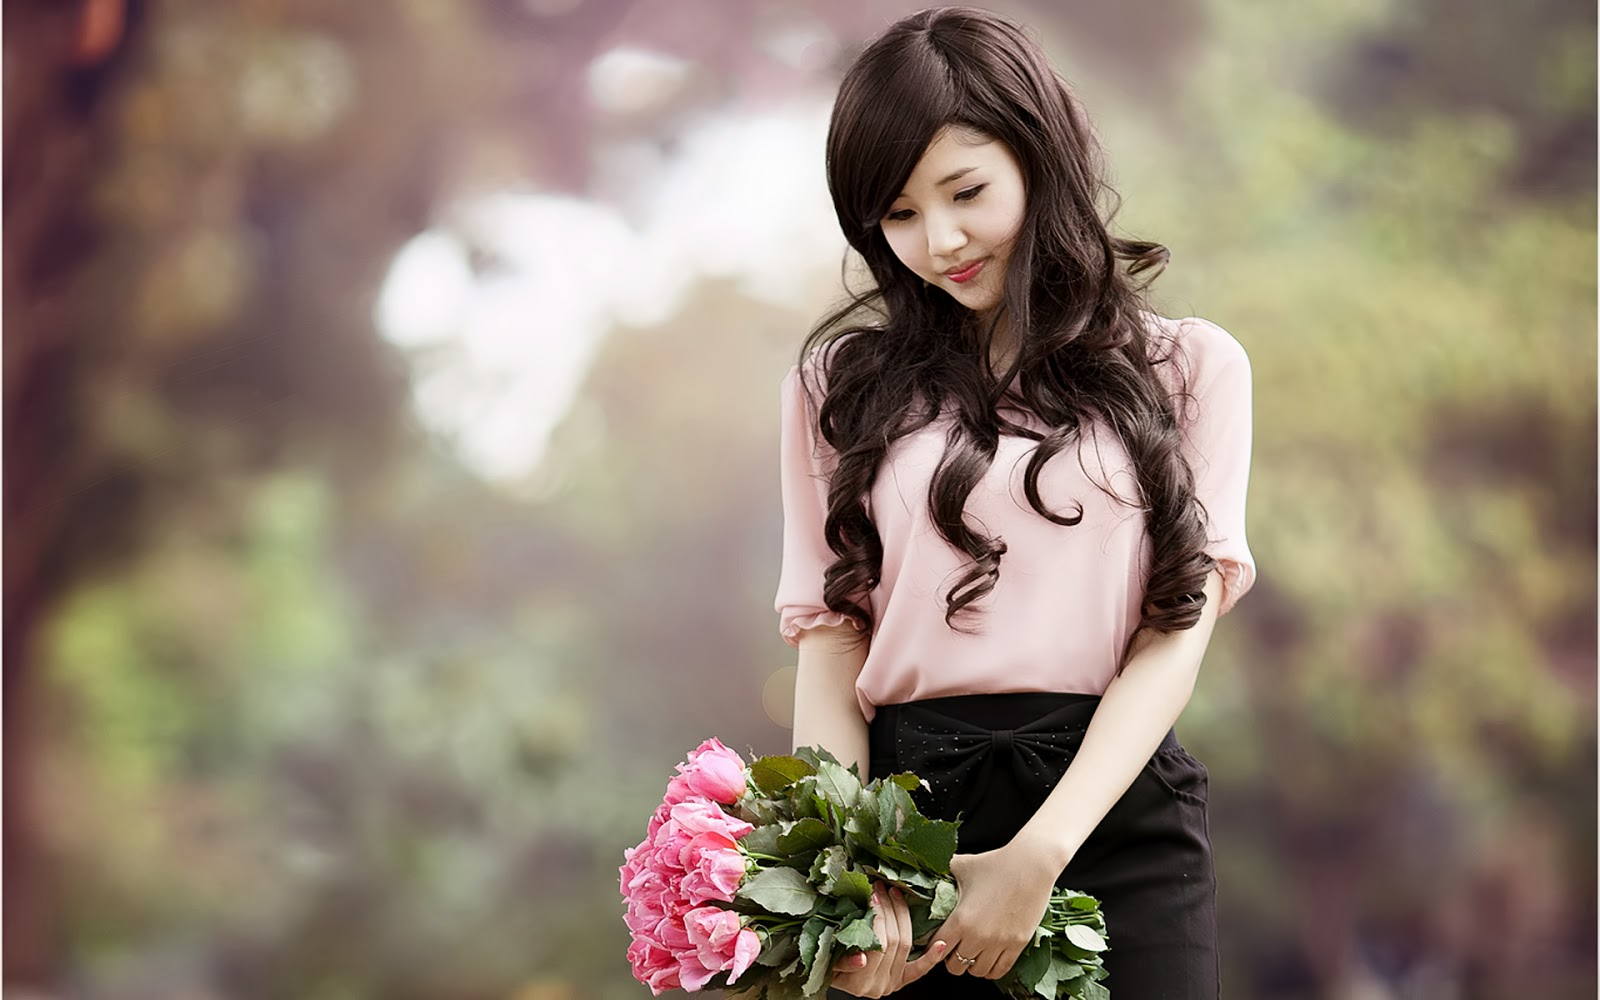 Beautiful vietnamese girls wallpapers most beautiful for 1234 get on the dance floor hd video download